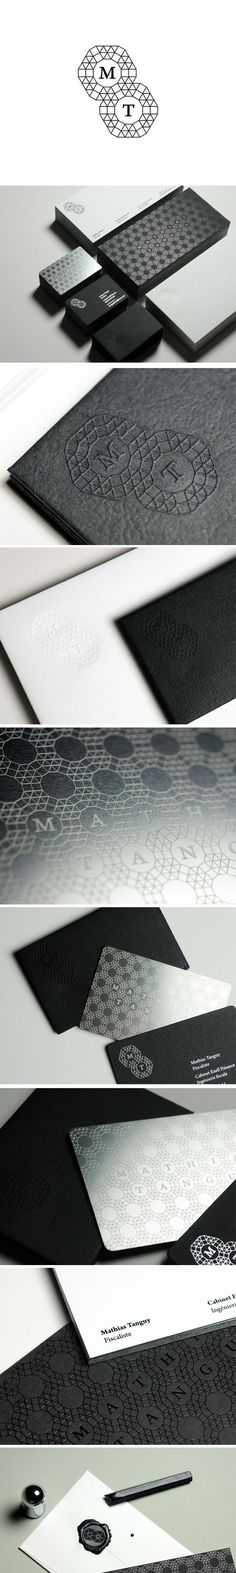 Stationery Design for Mathias Tanguy via Branding Served. #metal #etch